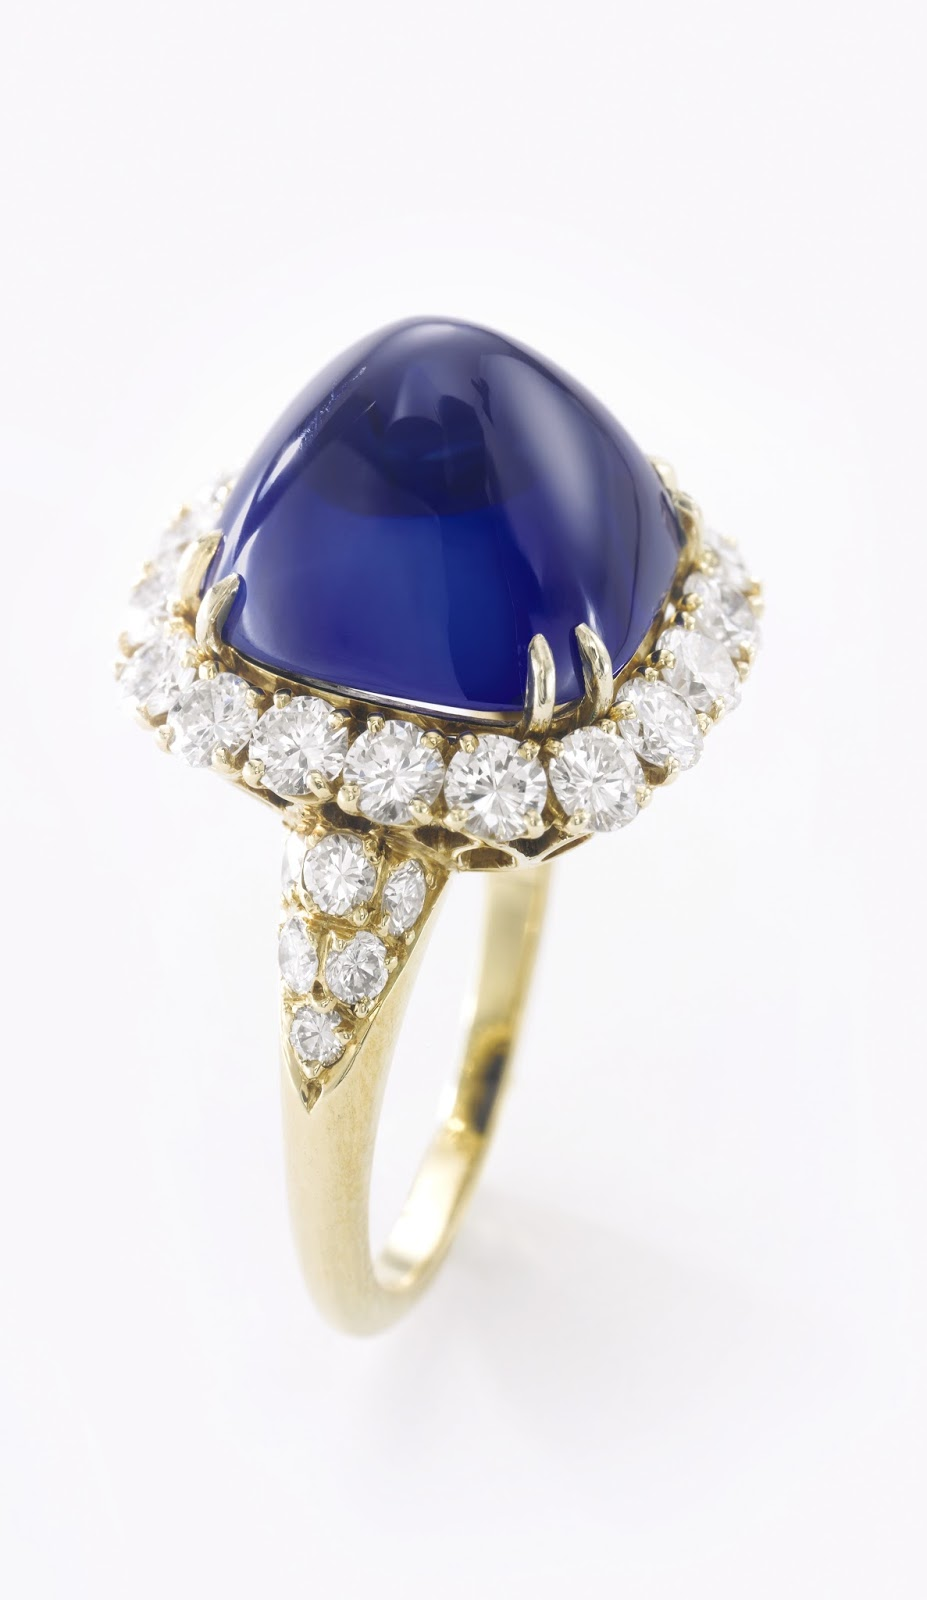 Lot 419 - Fine Kashmir sapphire and diamond ring - 15.34 carats